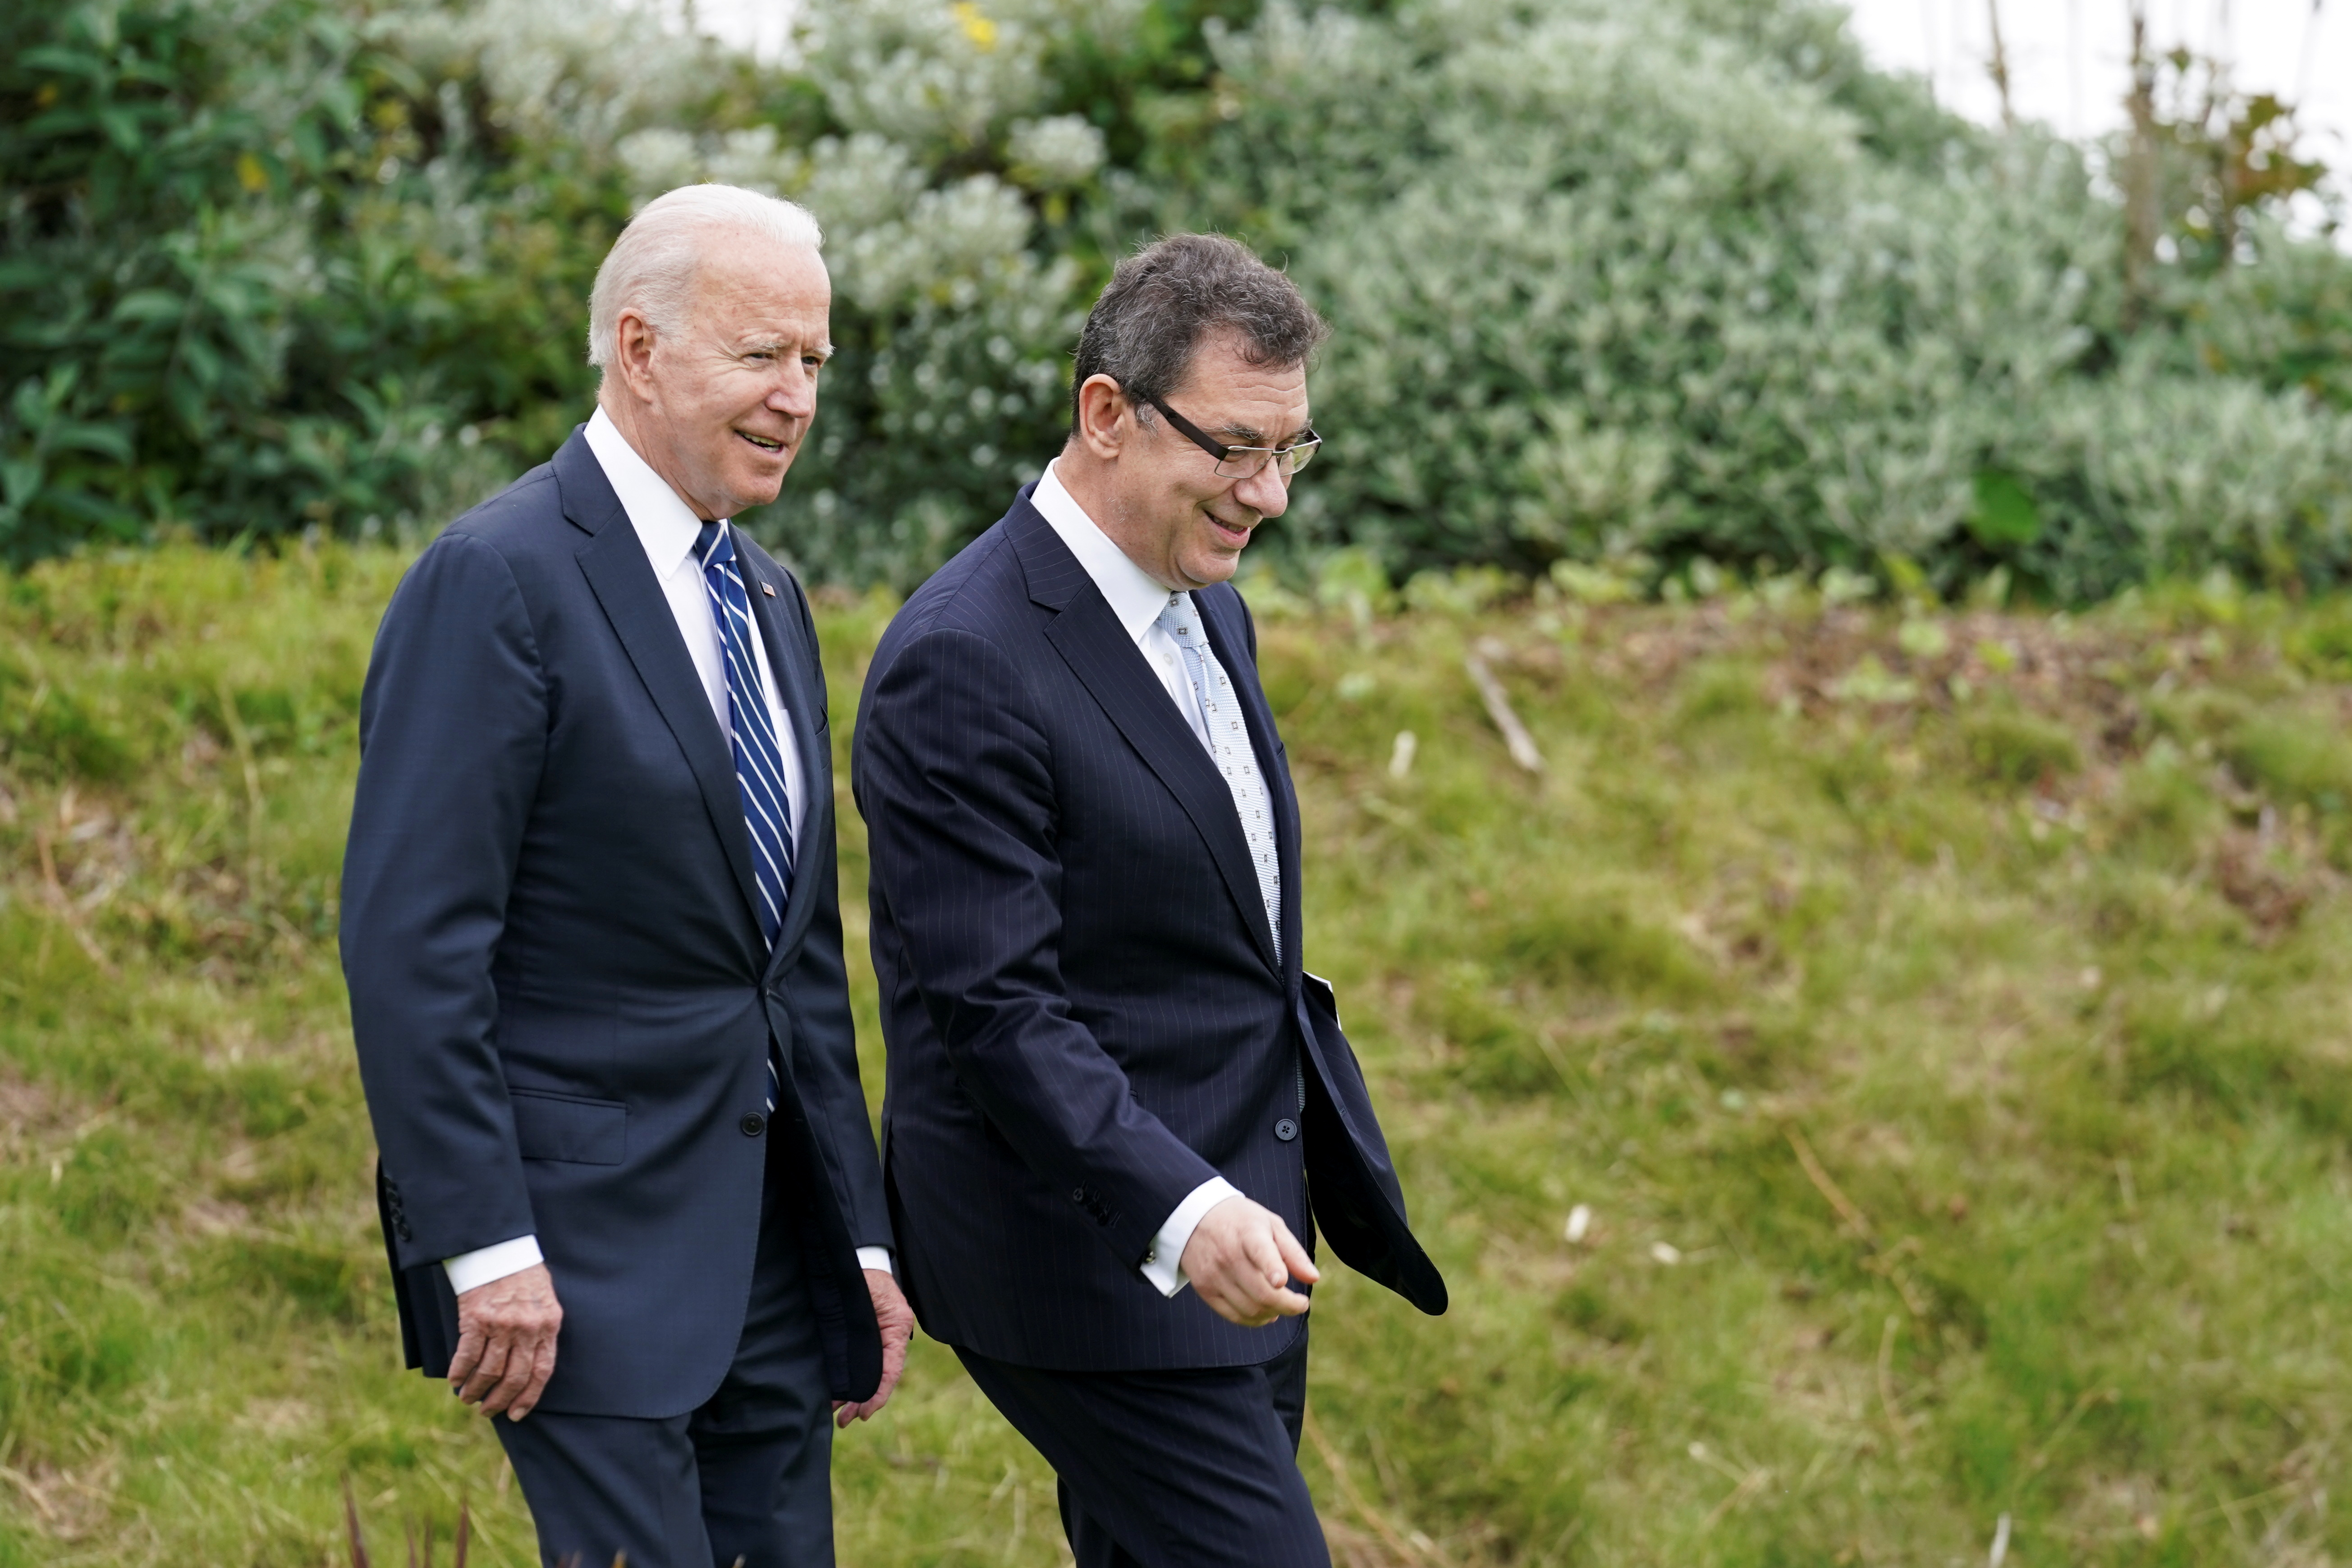 U.S. President Joe Biden arrives with Pfizer CEO, Albert Bourla, to make remarks about the coronavirus disease (COVID-19) vaccine during a visit to St. Ives in Cornwall, Britain, June 10, 2021. REUTERS/ Kevin Lamarque